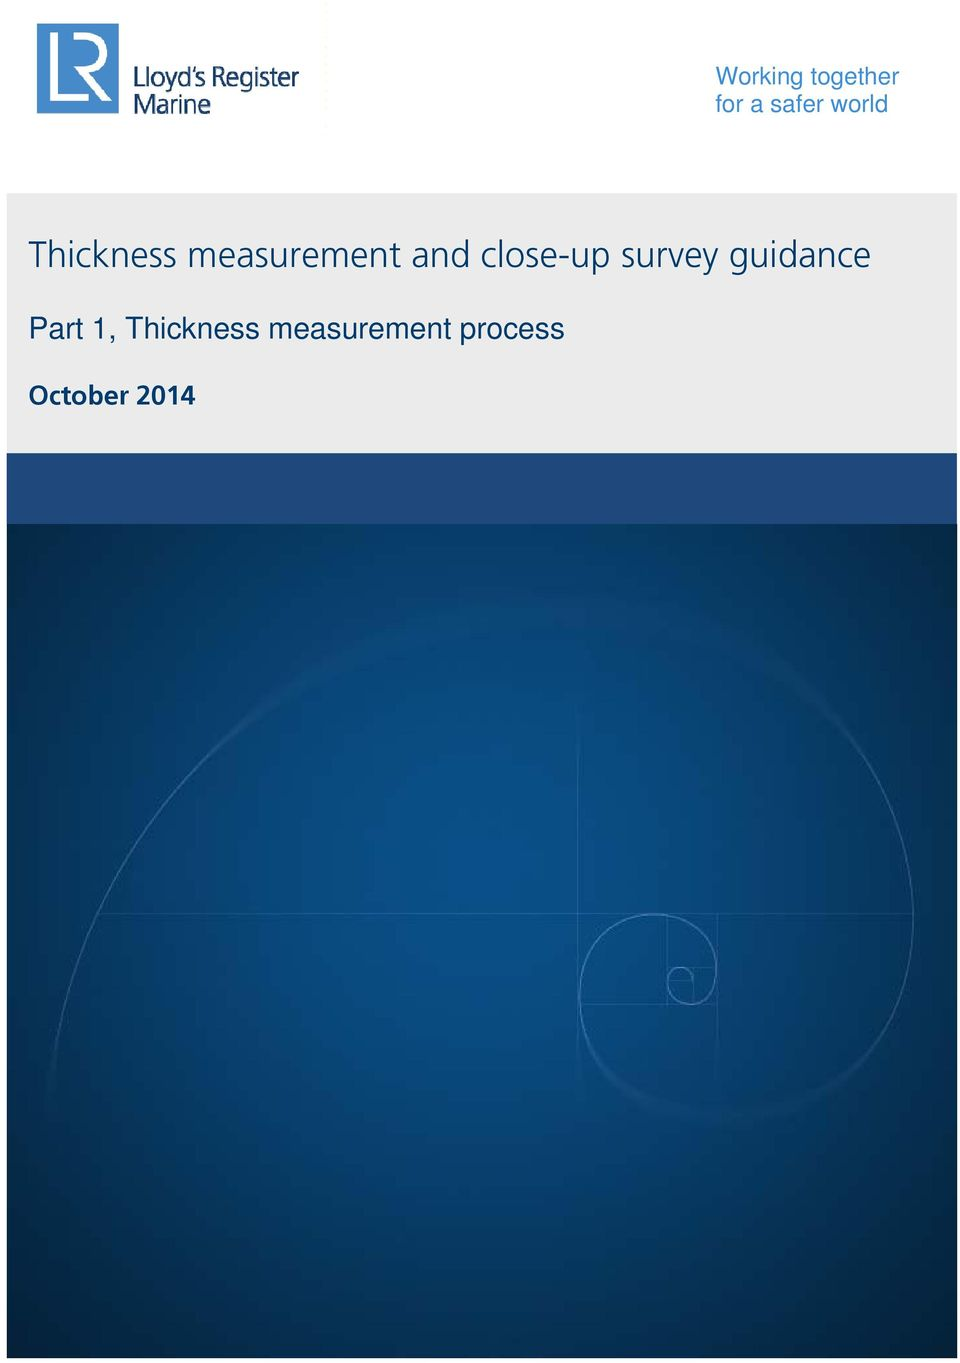 close-up survey guidance Part 1,